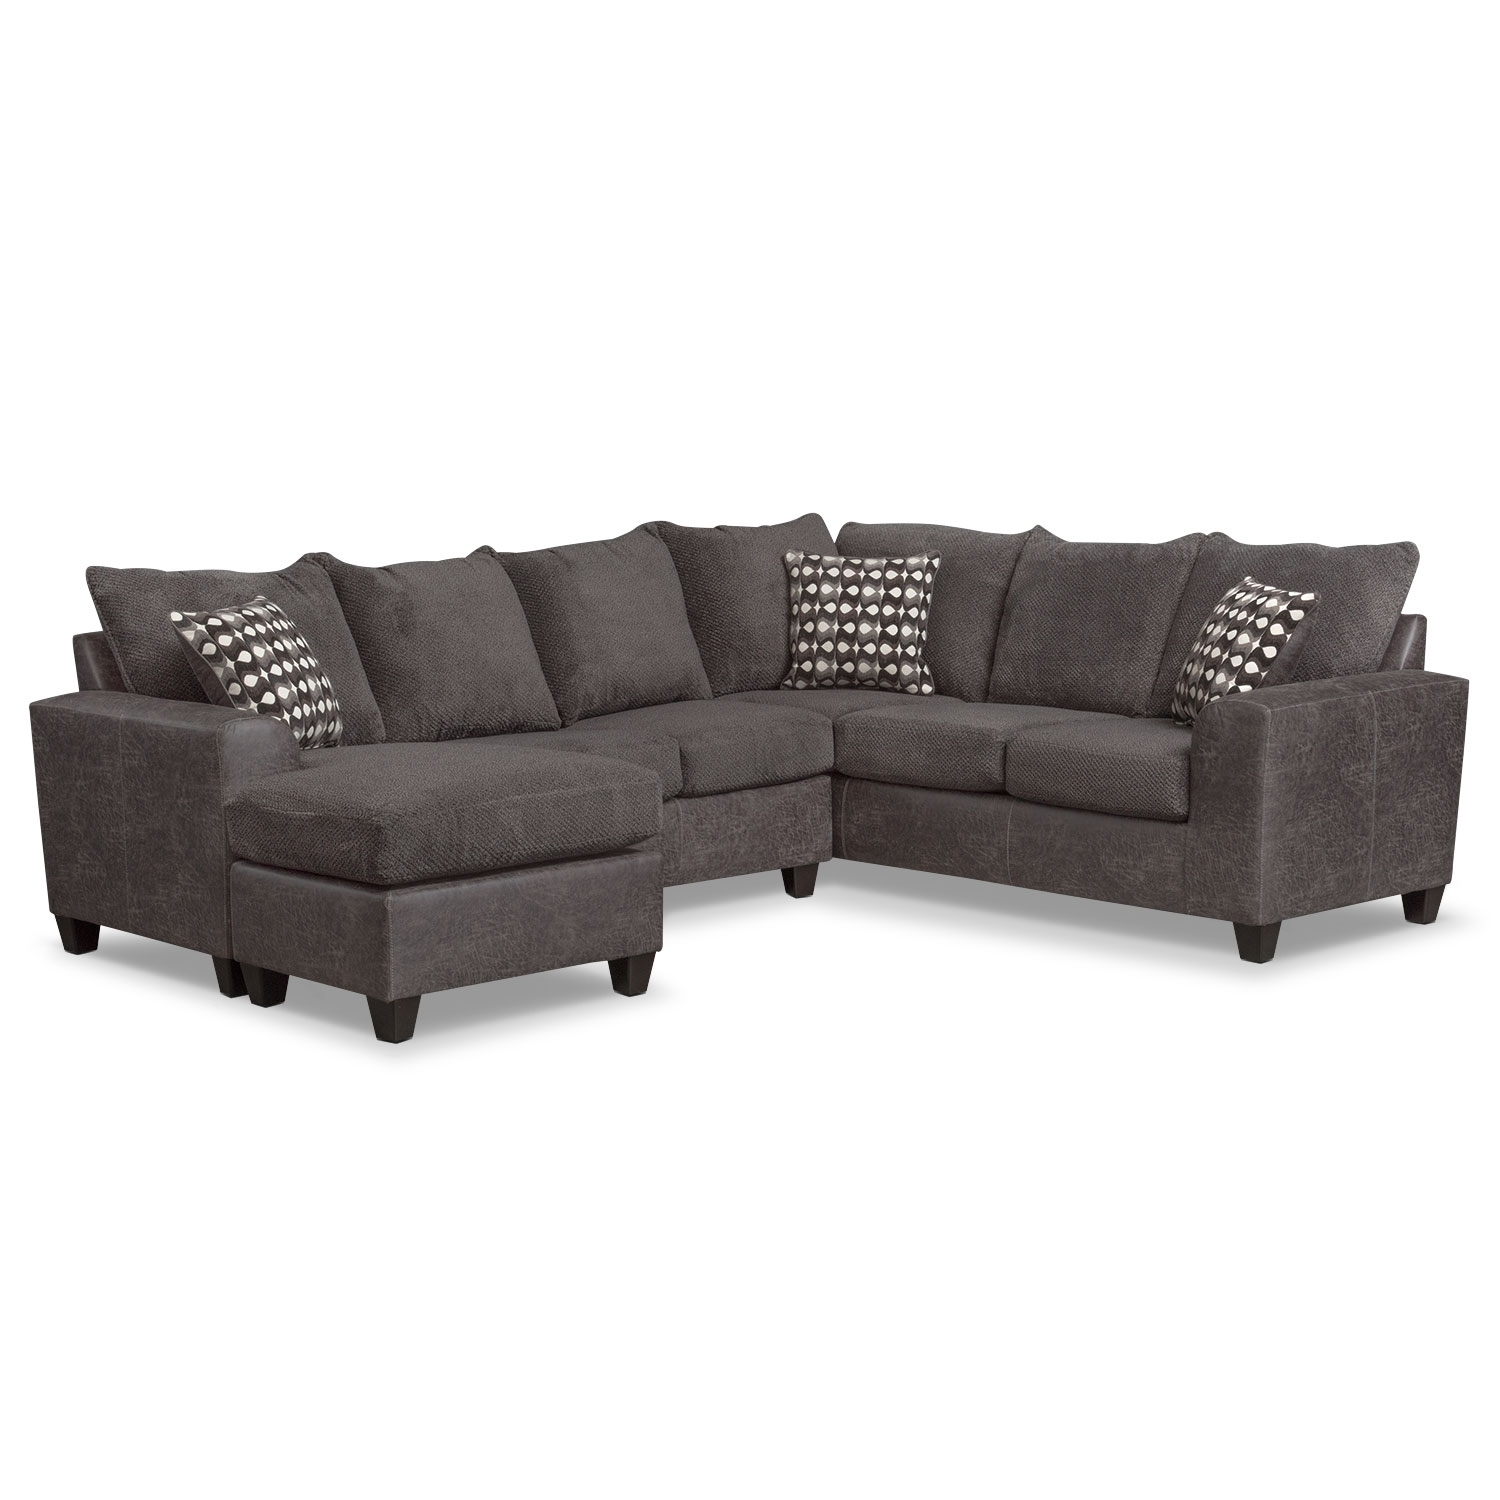 Brando 3 Piece Memory Foam Sleeper Sectional – Smoke | American Within Mesa Foam 2 Piece Sectionals (Image 3 of 25)